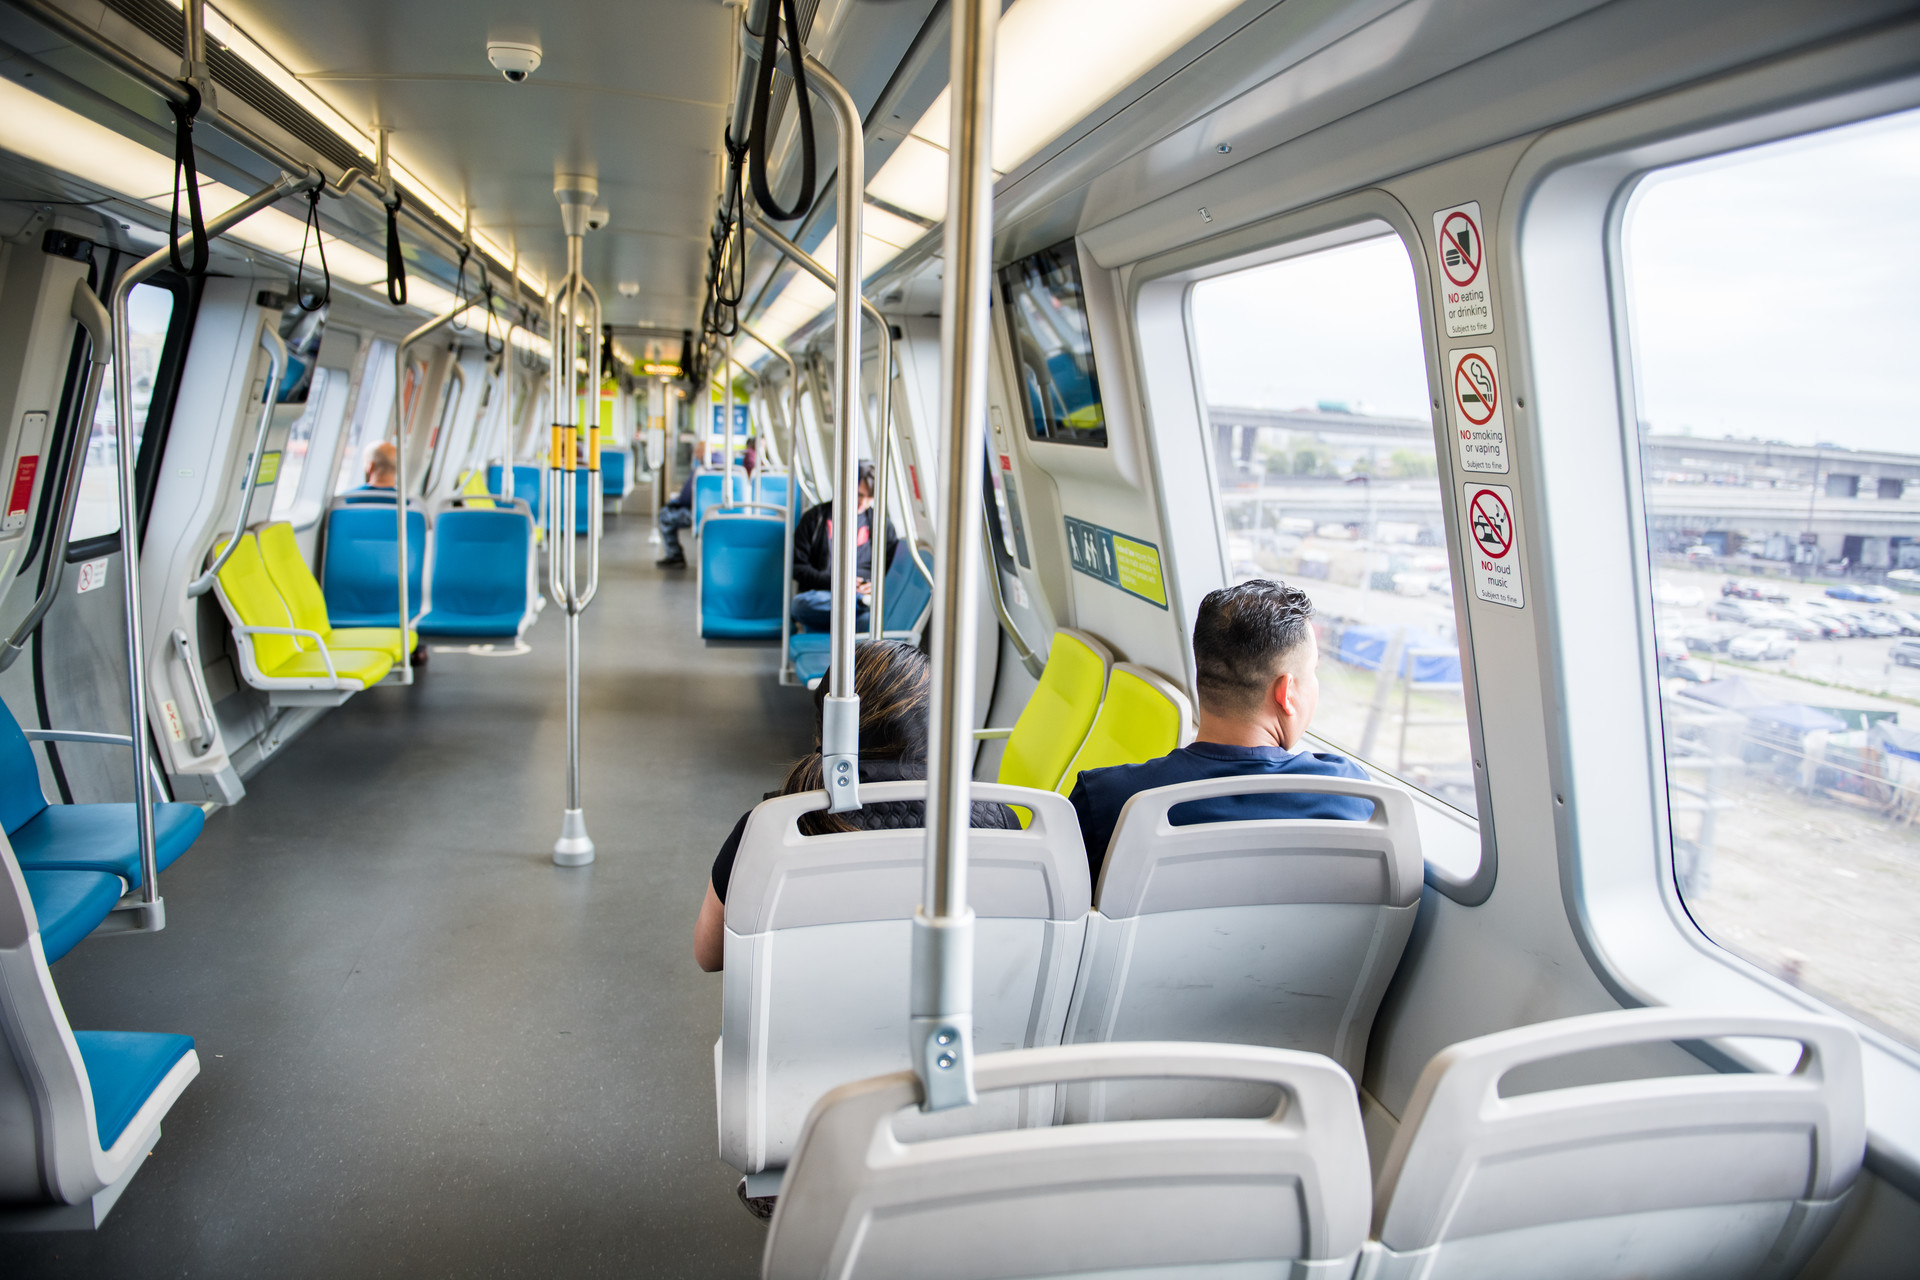 A mostly empty BART train travels from Oakland to San Francisco on Tuesday, Mar. 10, 2020.